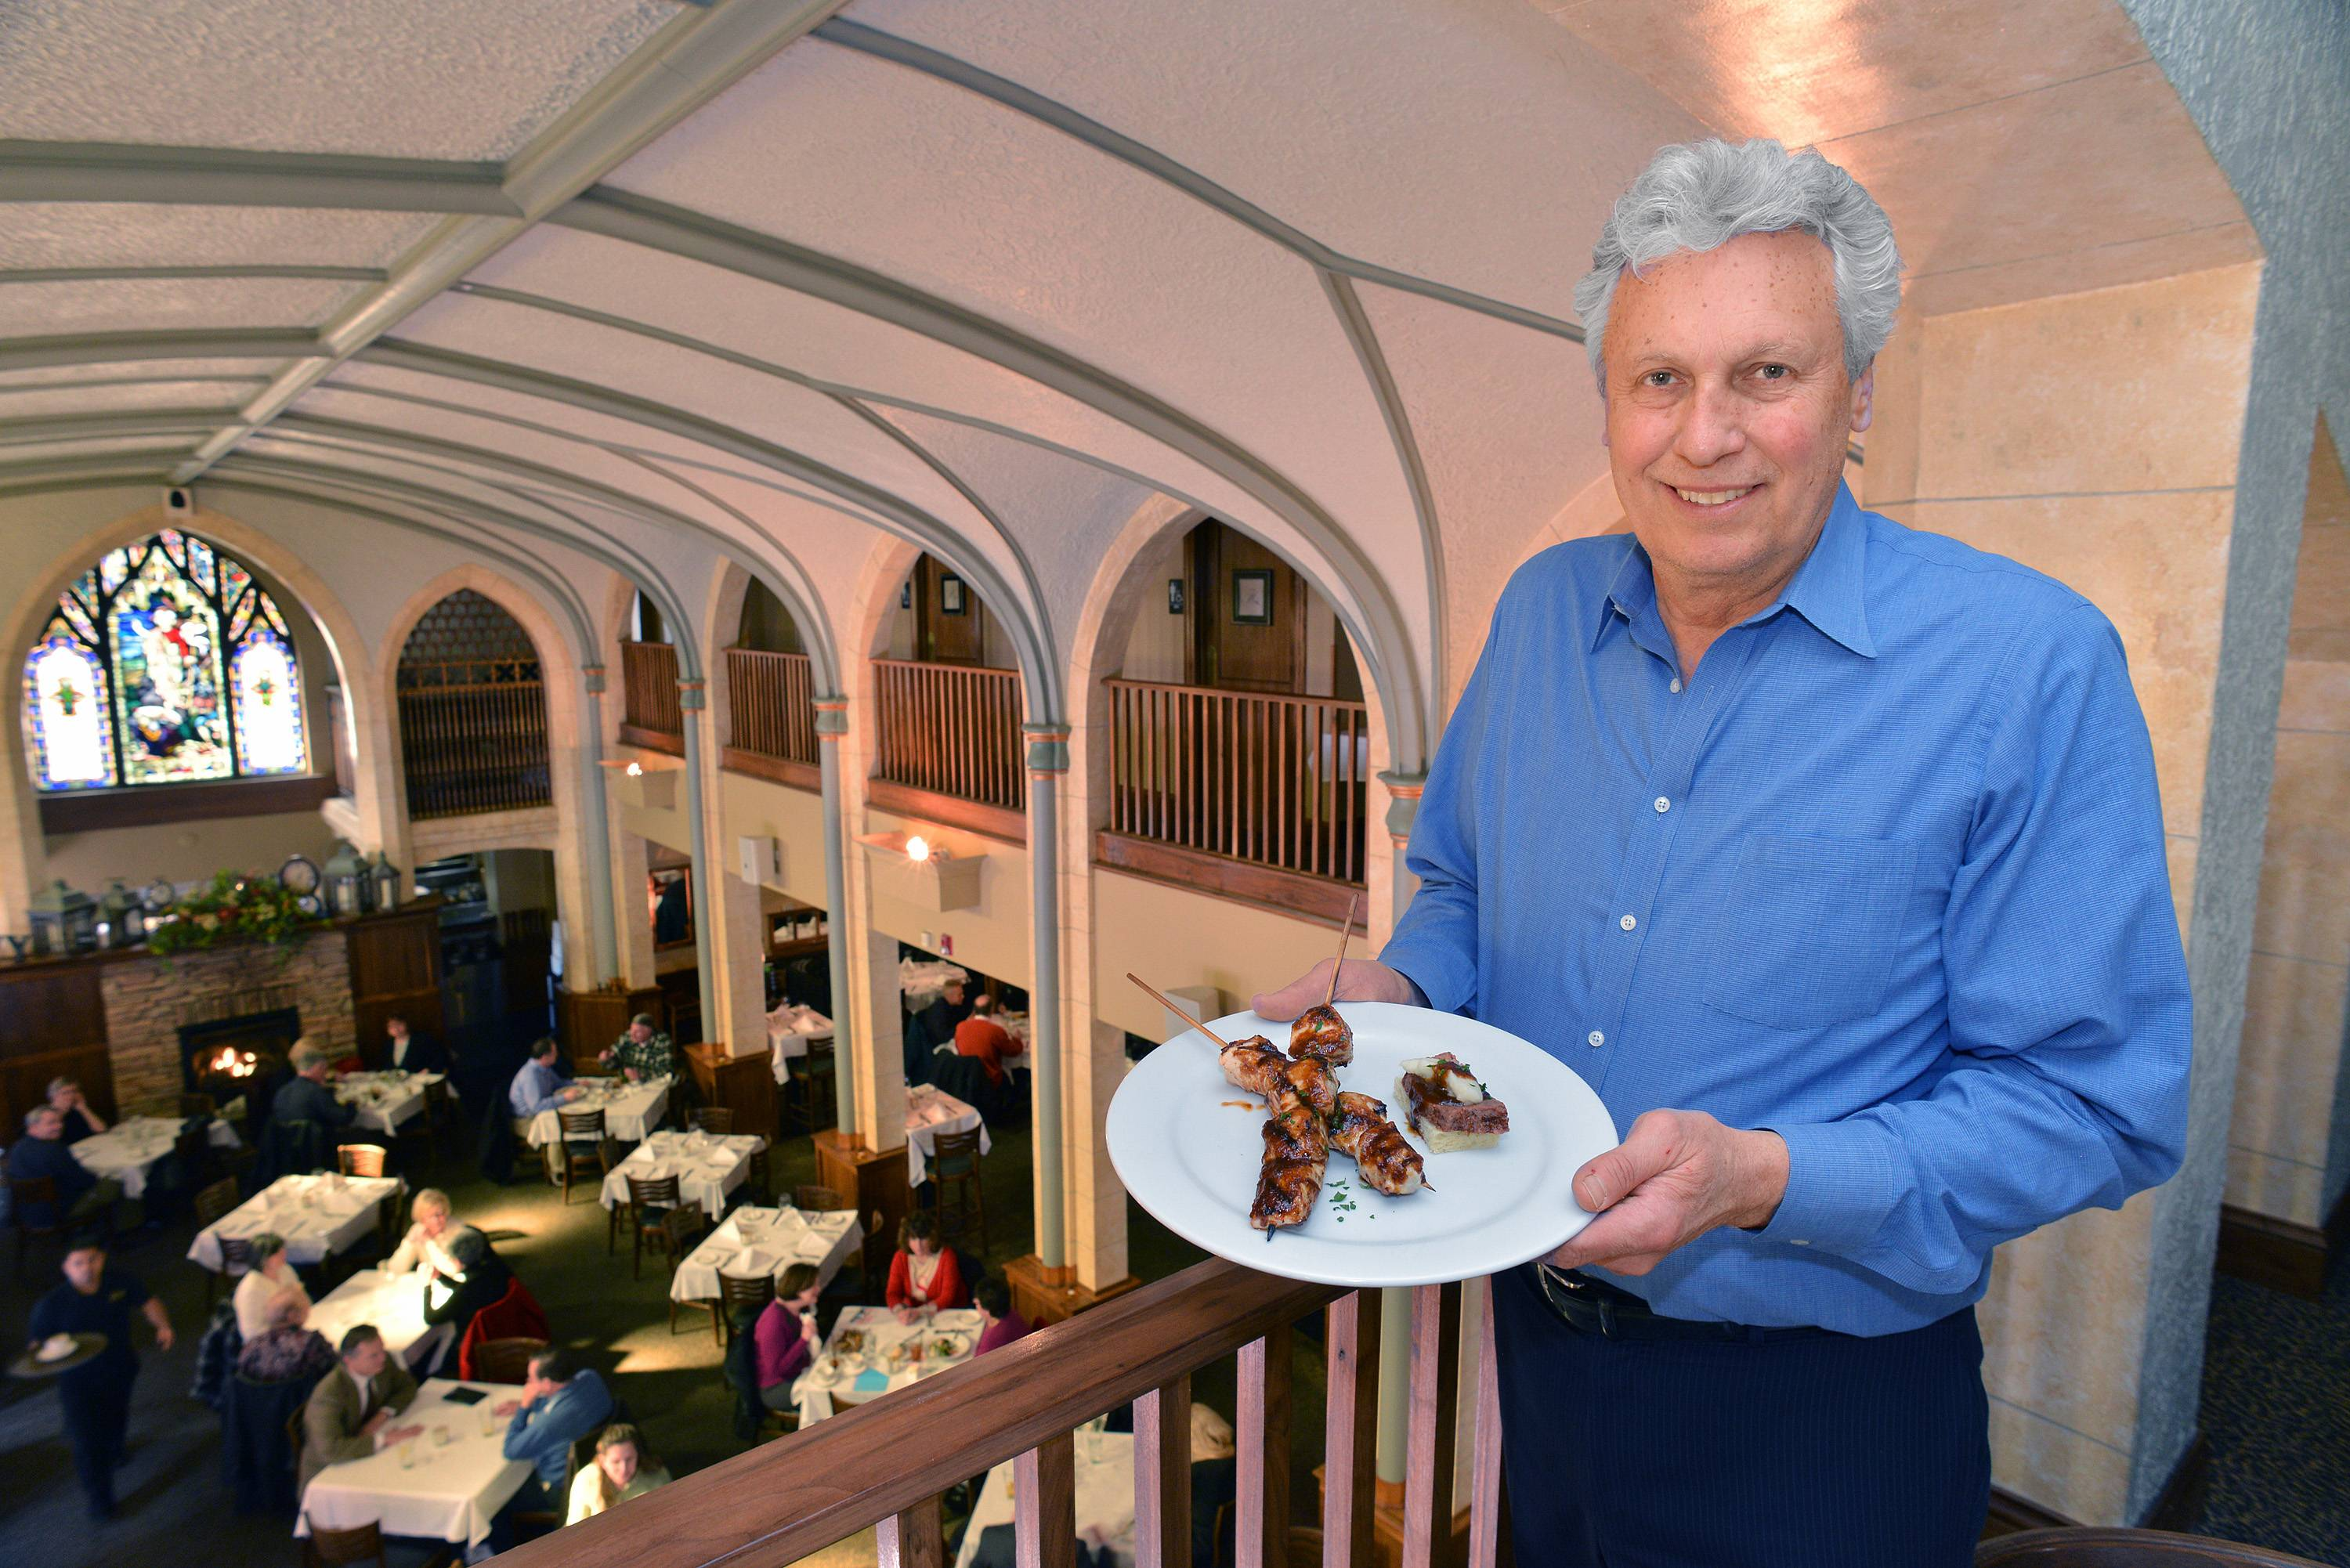 Dick O'Gorman, owner of the Ivy restaurant in downtown Wheaton, displays two specials — chicken satay skewers and andouille sausage meatloaf canap�s — that he'll be offering during a kickoff event for the Downtown Wheaton Association's first Restaurant Week.